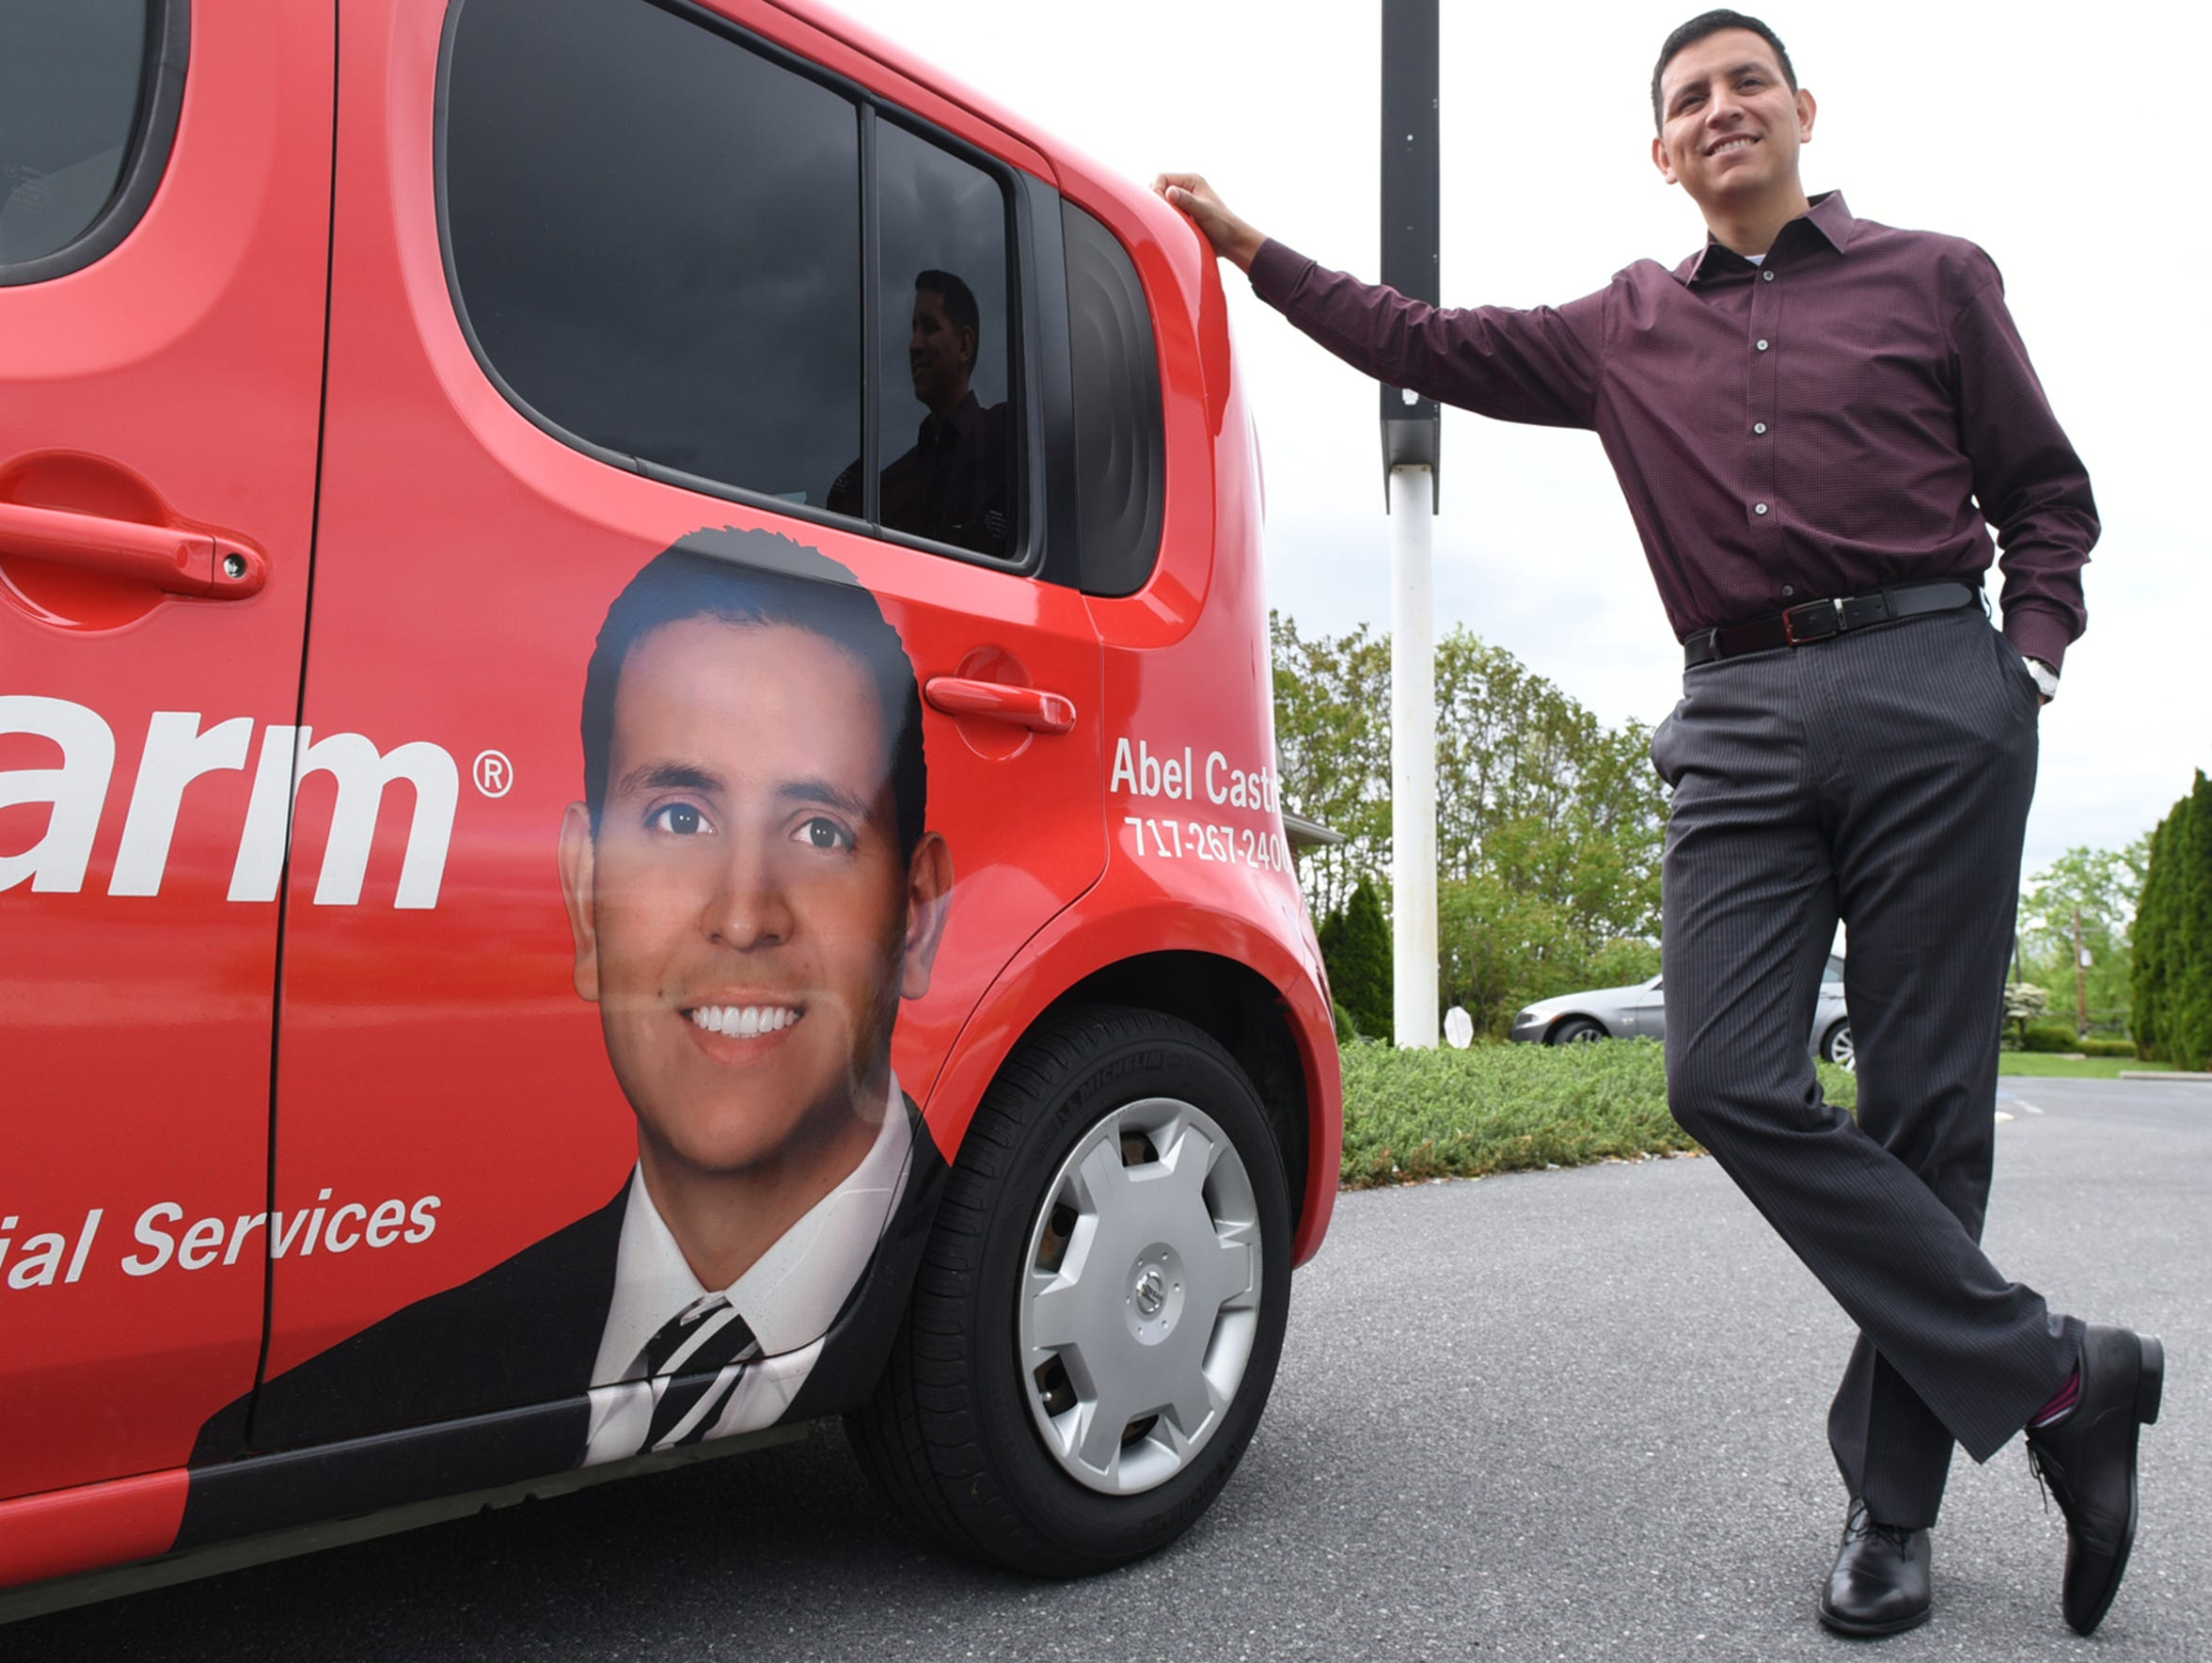 Abel Castro, a State Farm agent, is seen in front of